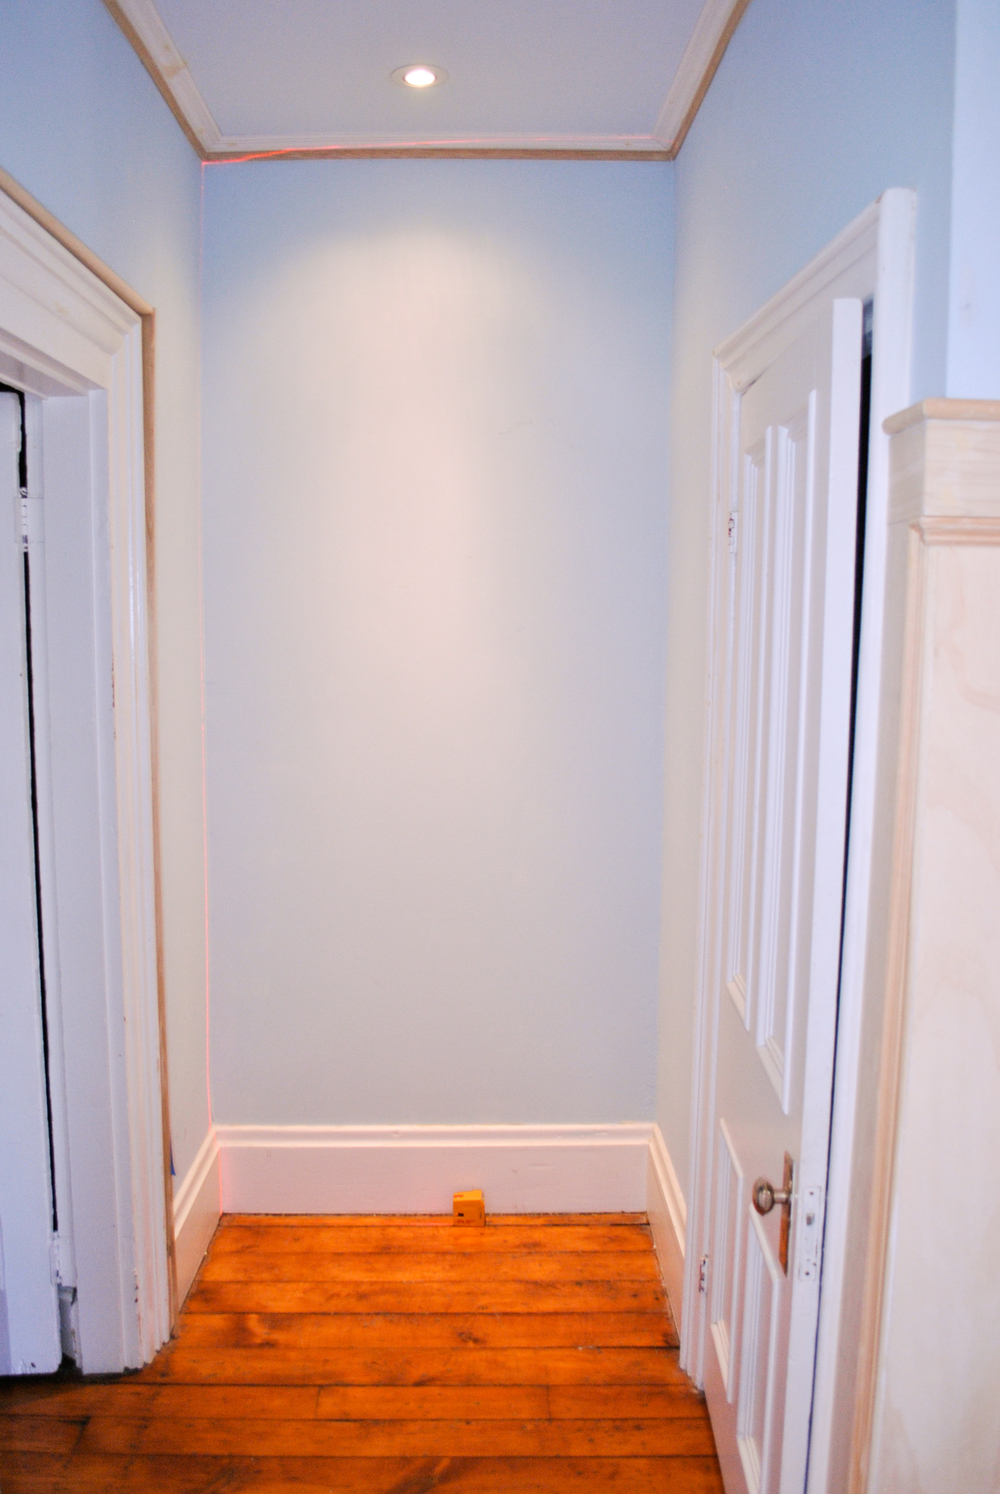 Client wanted a closet unit in this space for more storage.